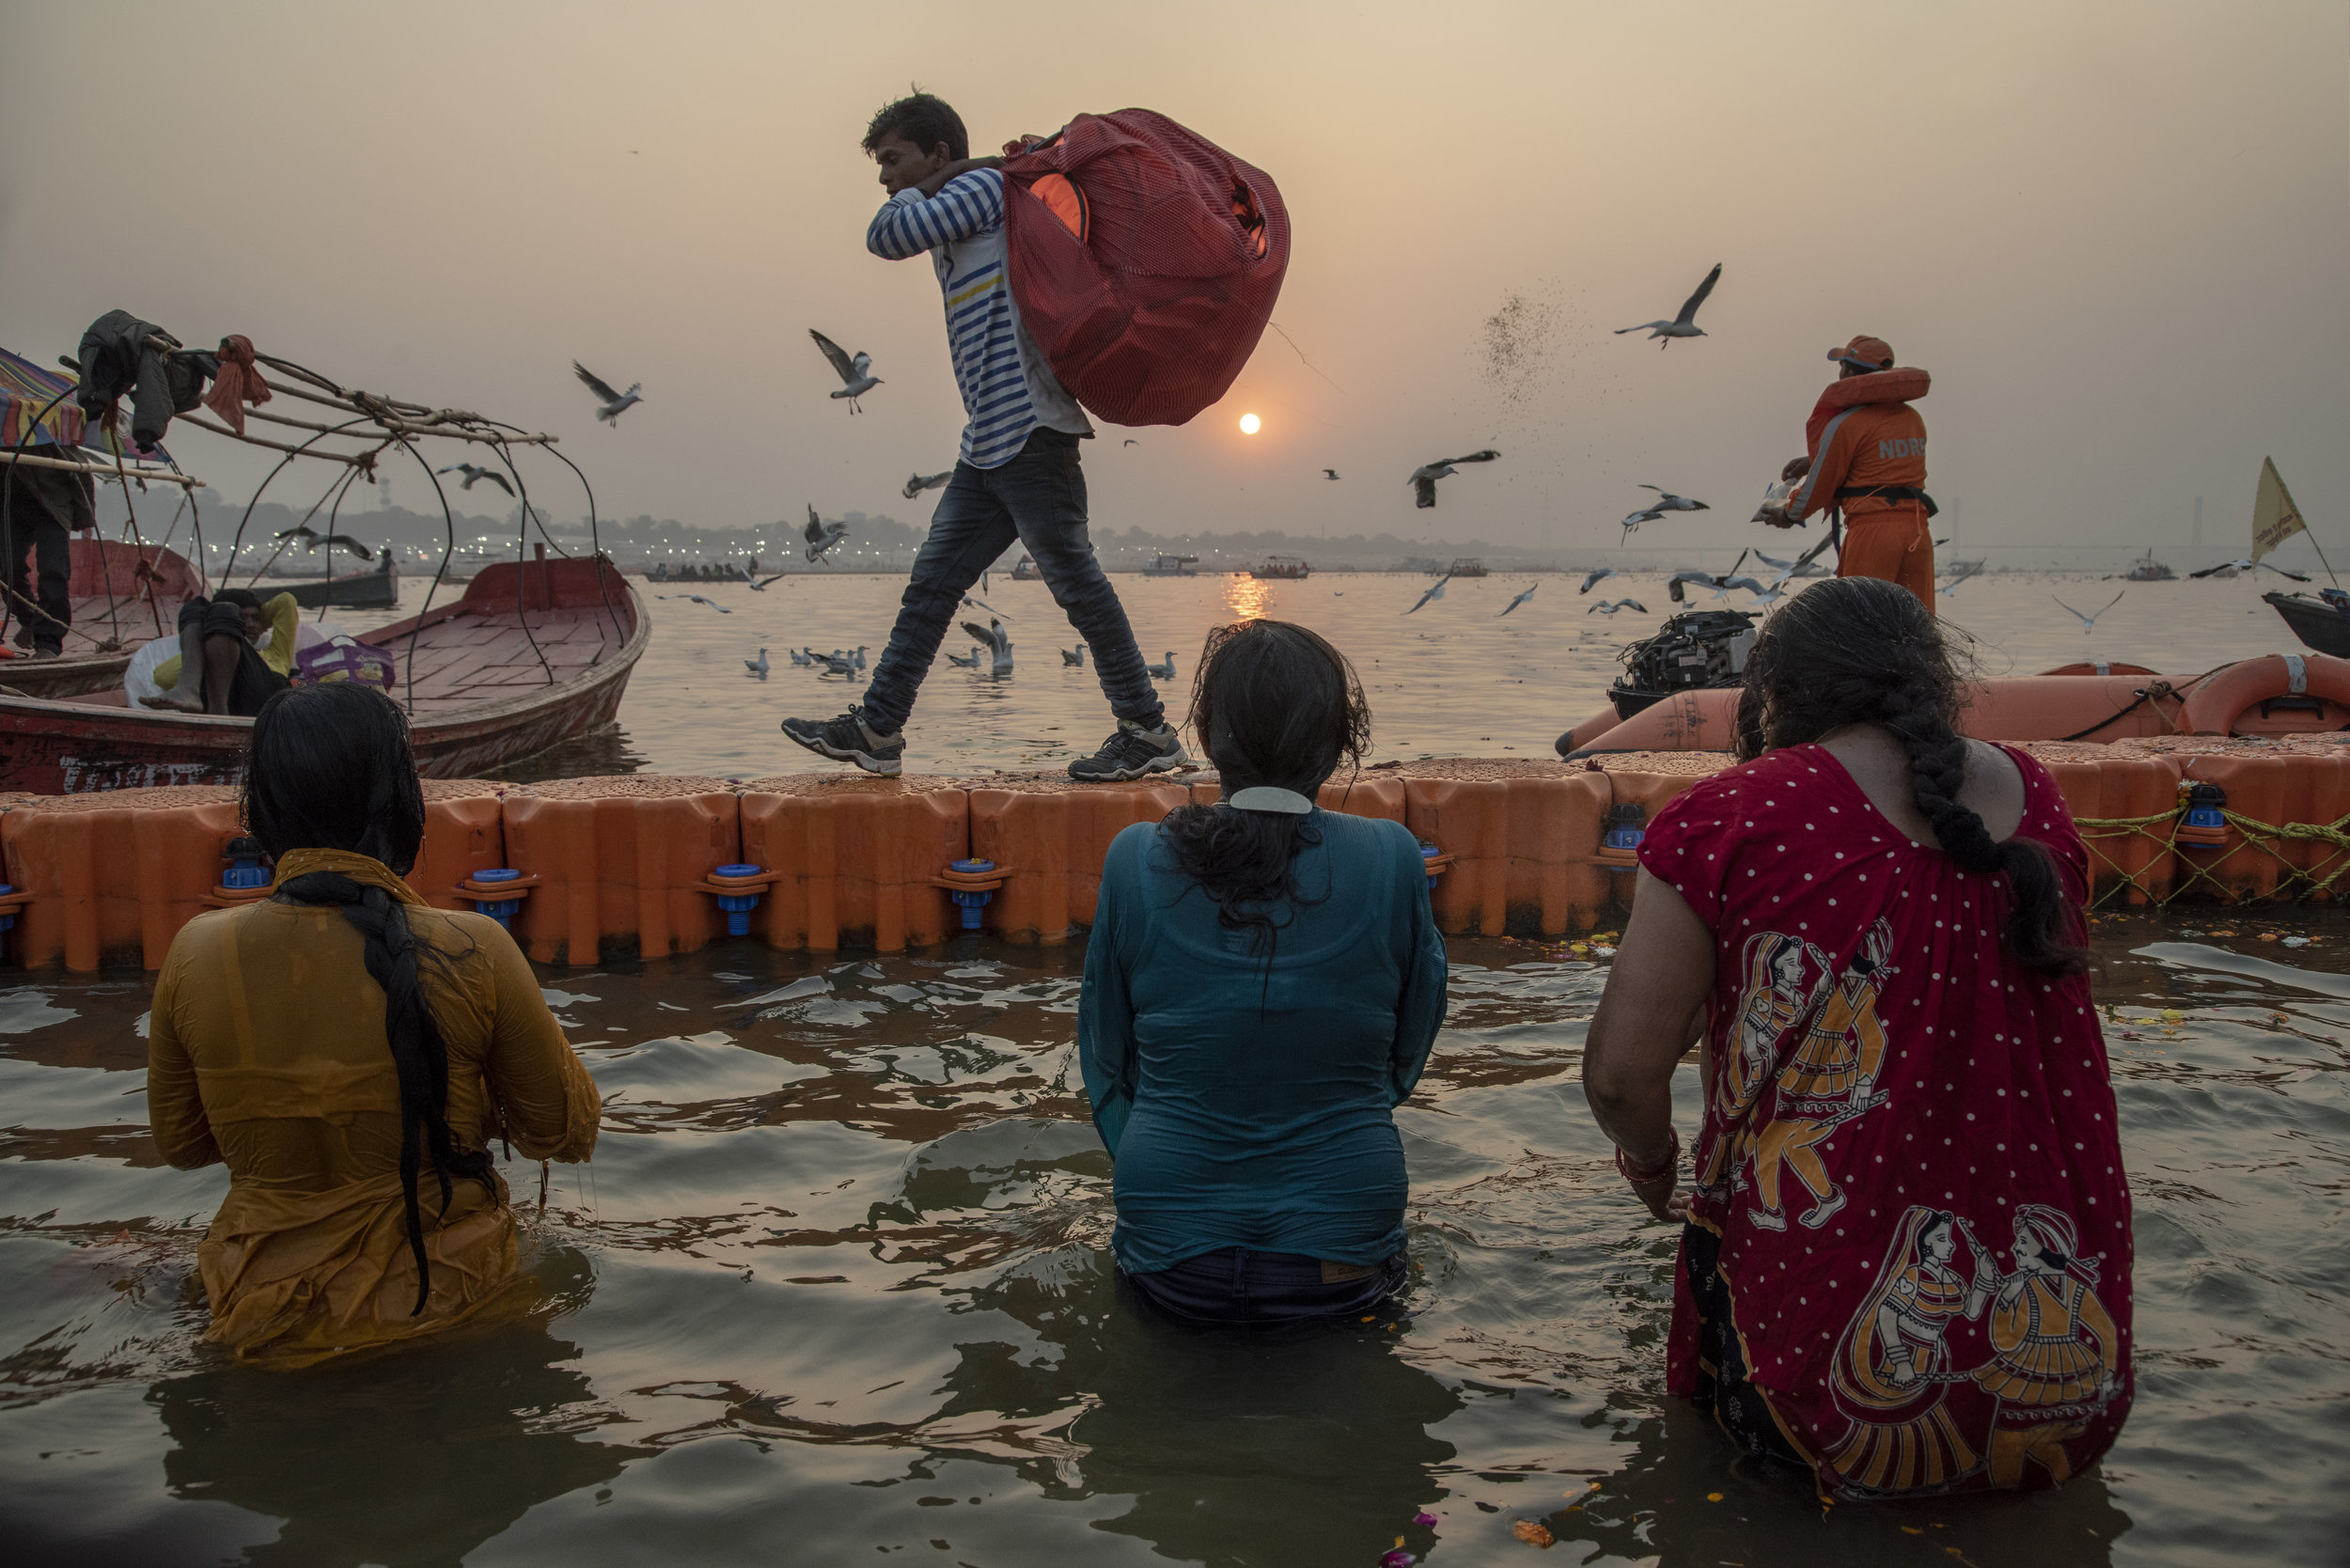 Three women bathe in the Ganges. A man carries life jackets along the barrier. Another tosses seed to the birds. Here at the rivers edge life gives and it receives. It preserves and purifies.